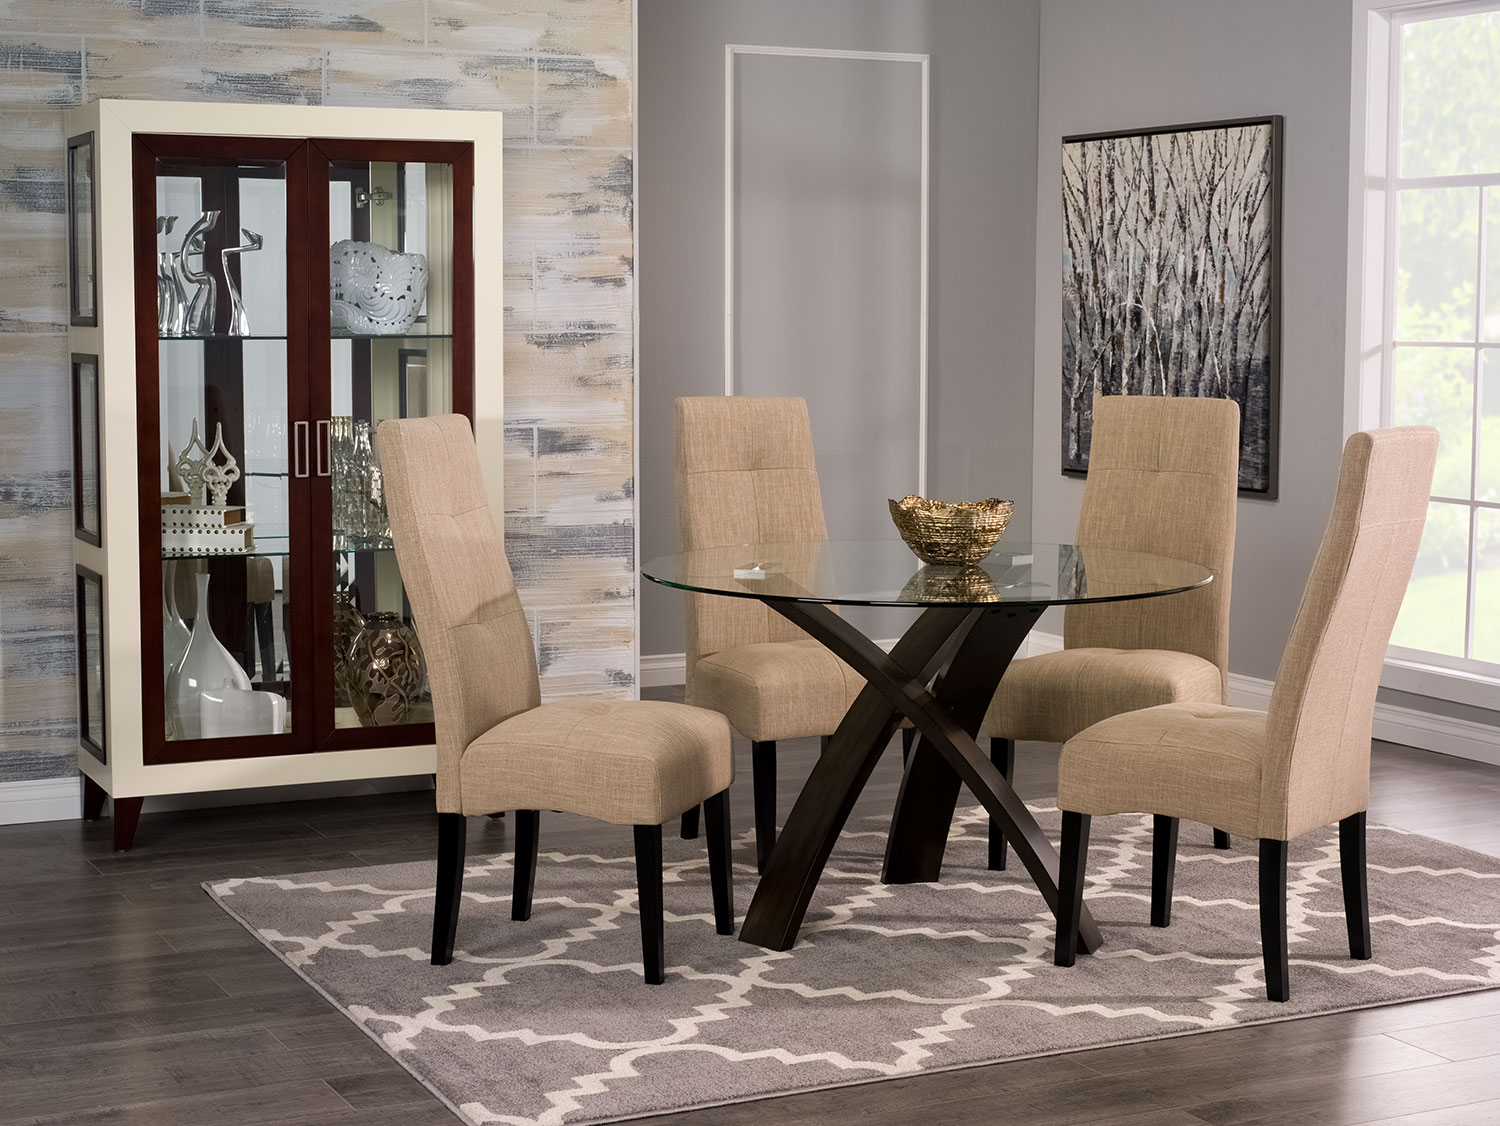 Skye 5-Piece Dining Package with Sadie Dining Chairs – Taupe